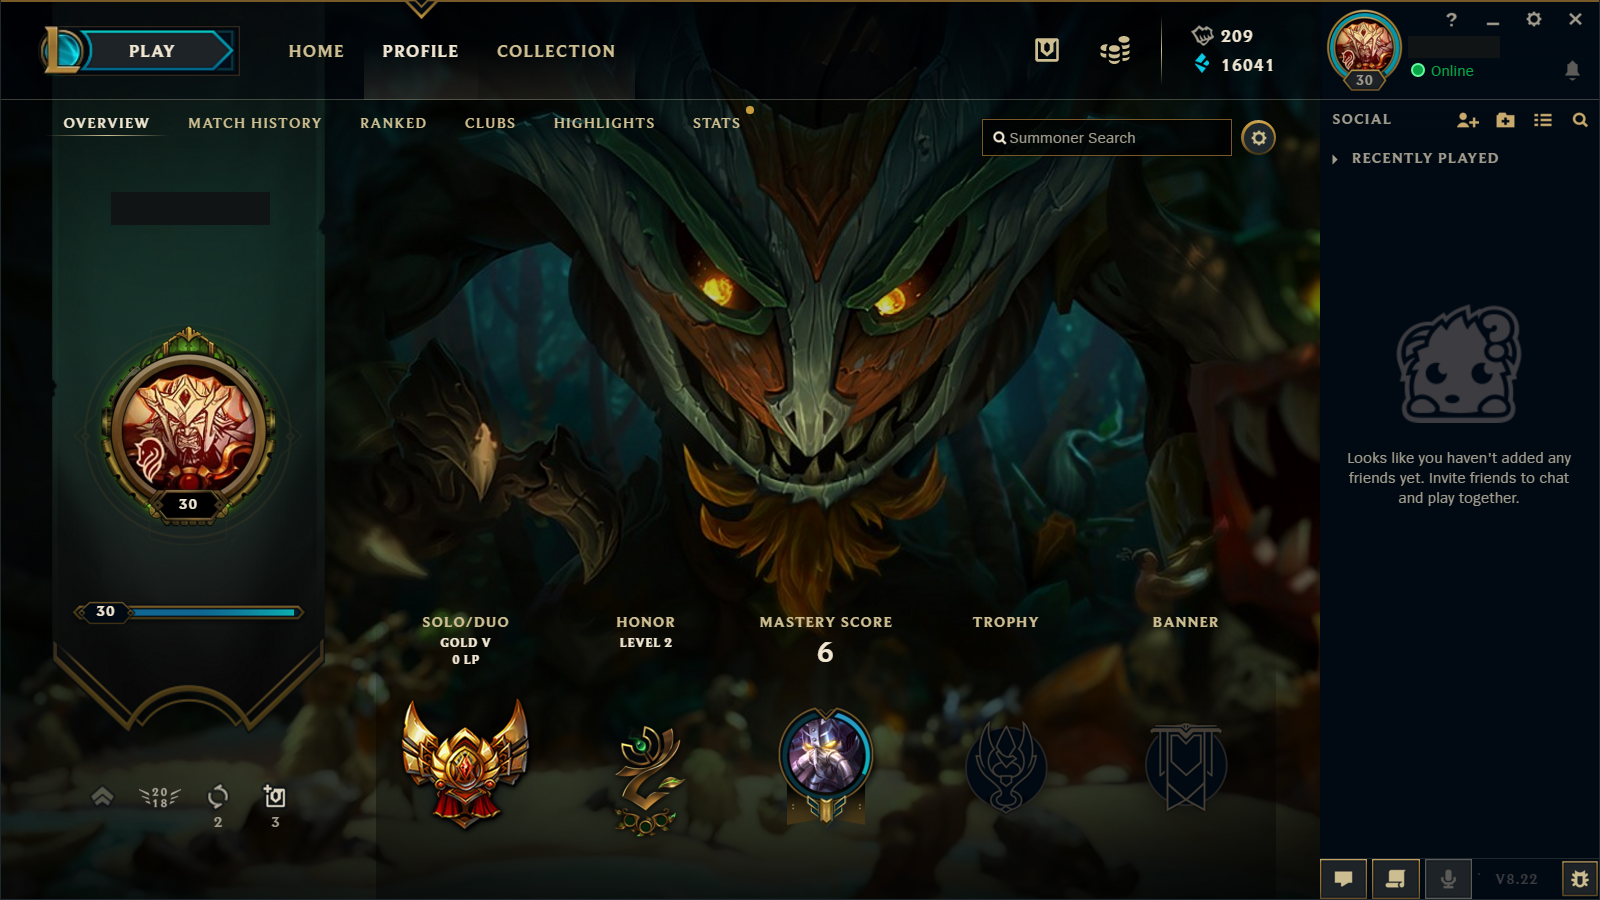 fa9034c7564aabf81a7c6516cc31509b - Using Vpn For League Of Legends